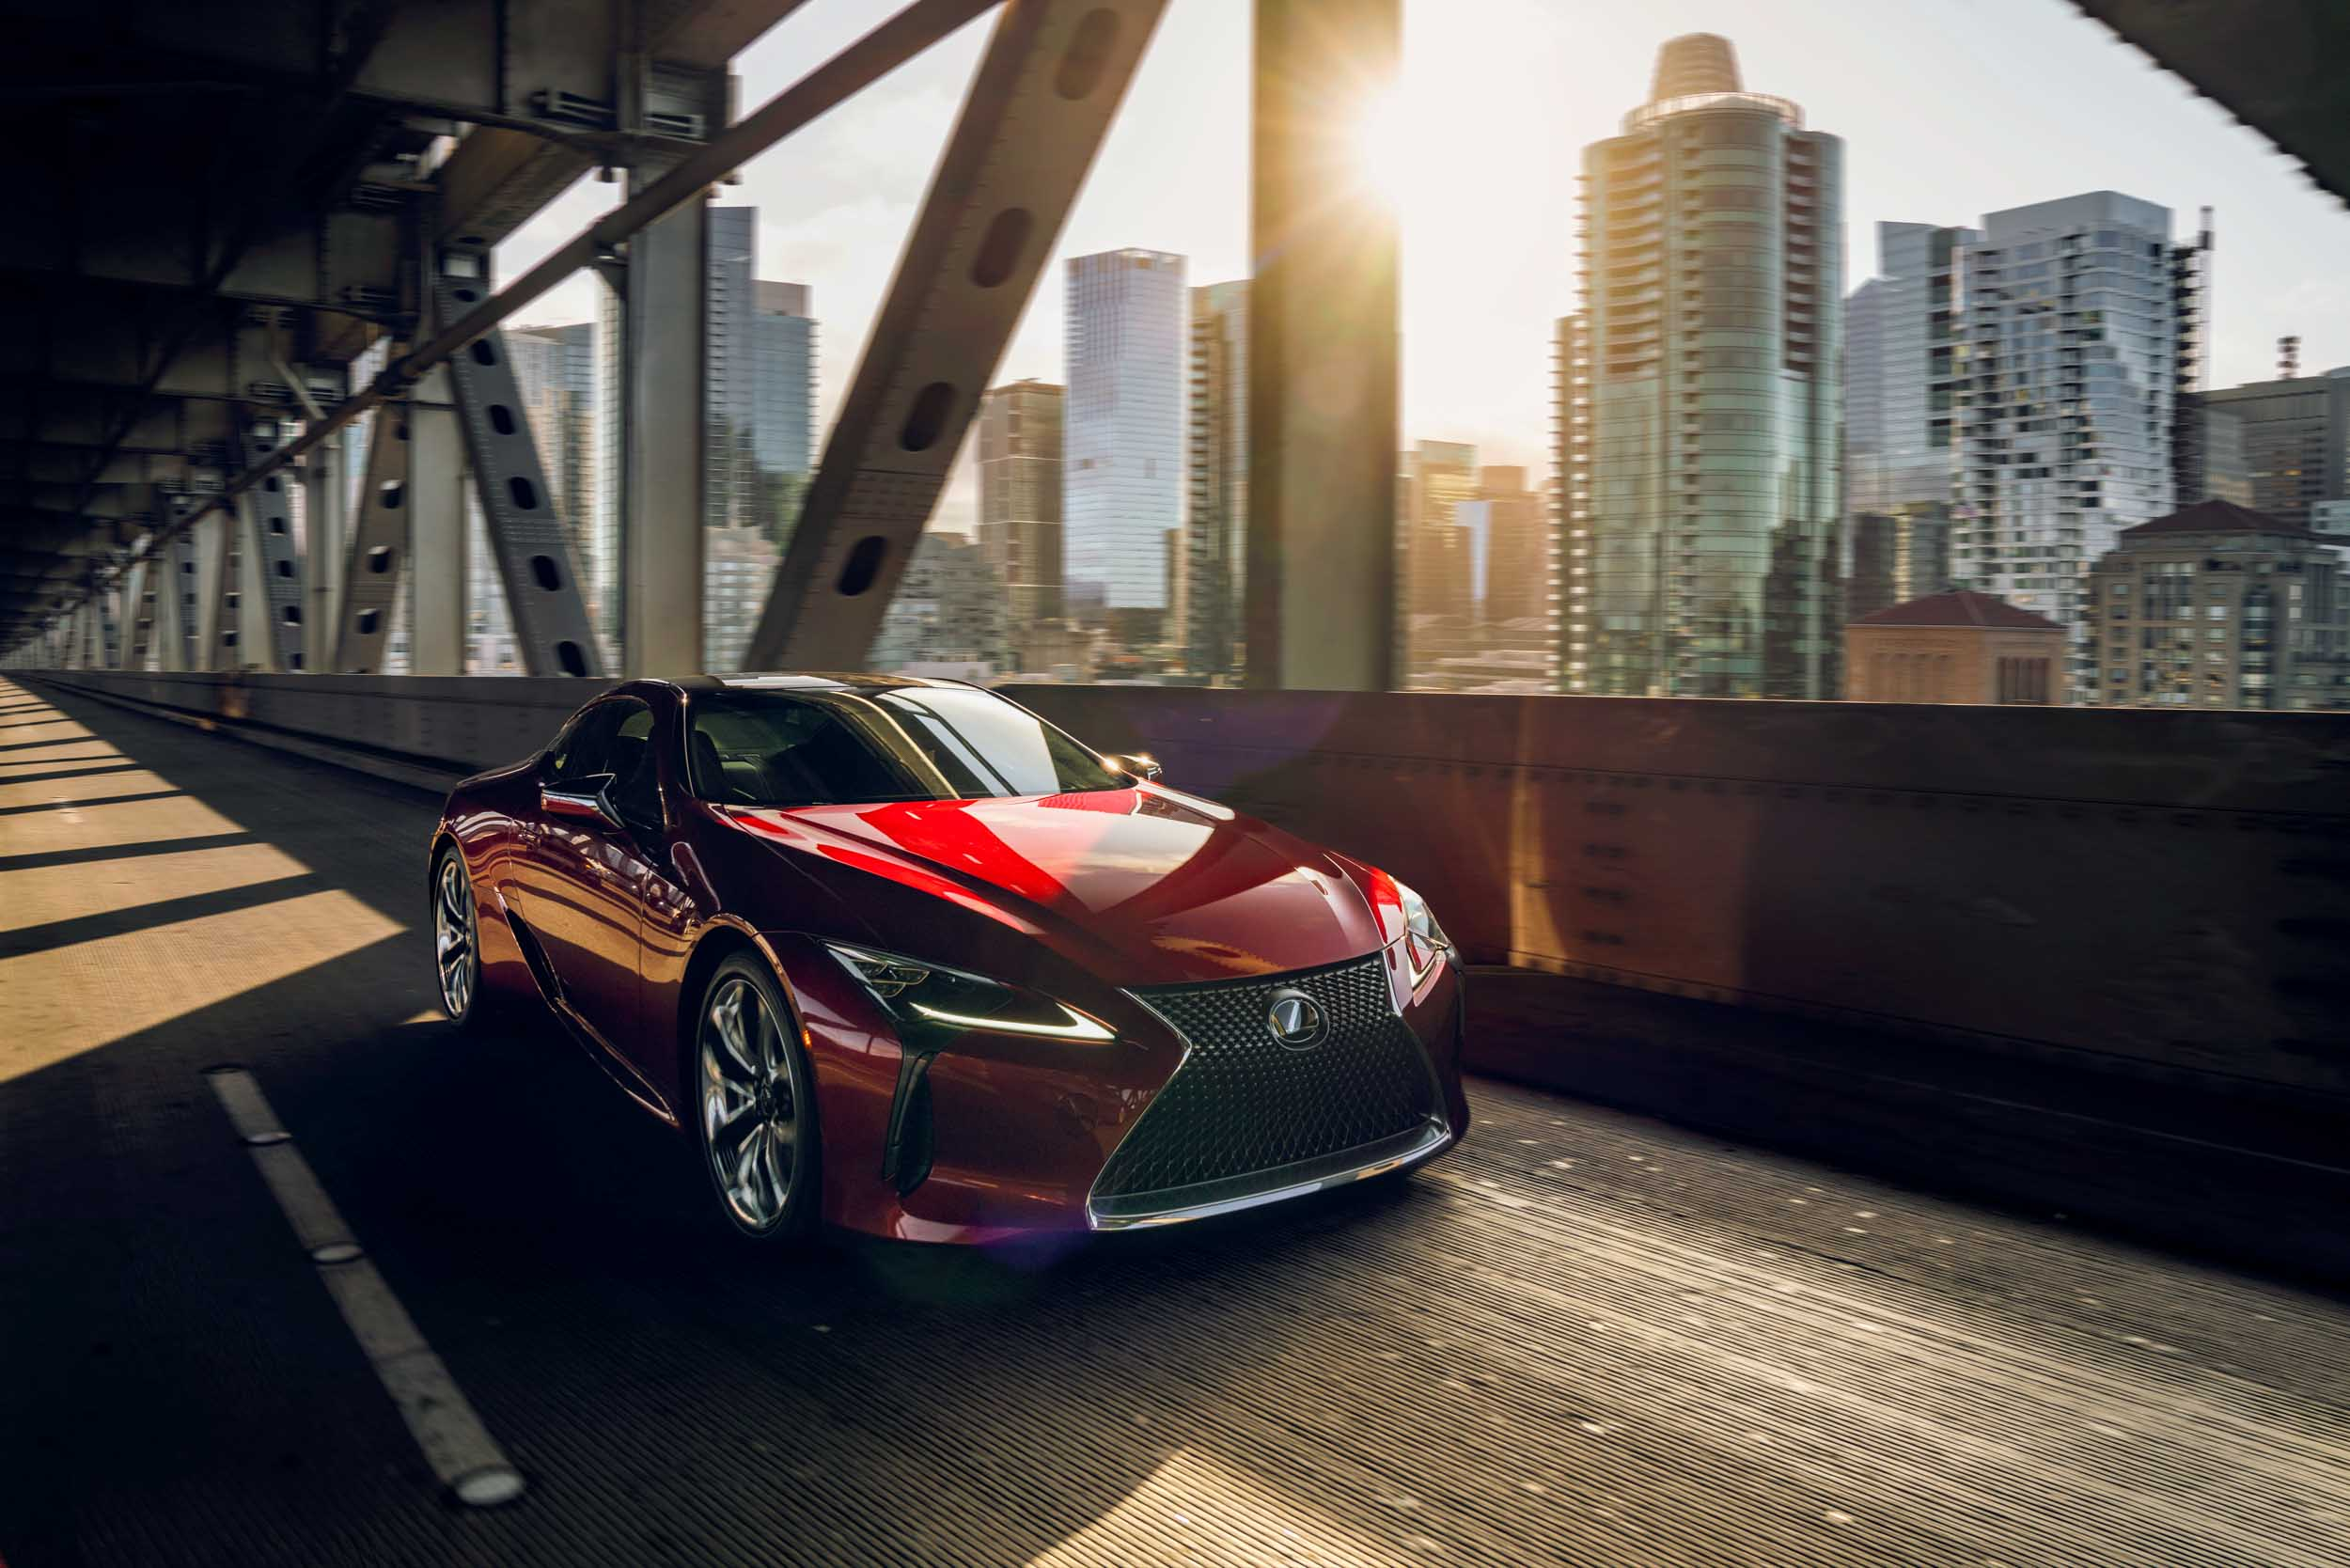 Bax-Towner-PF-Automotive-LexusLC-20190907-BA77867